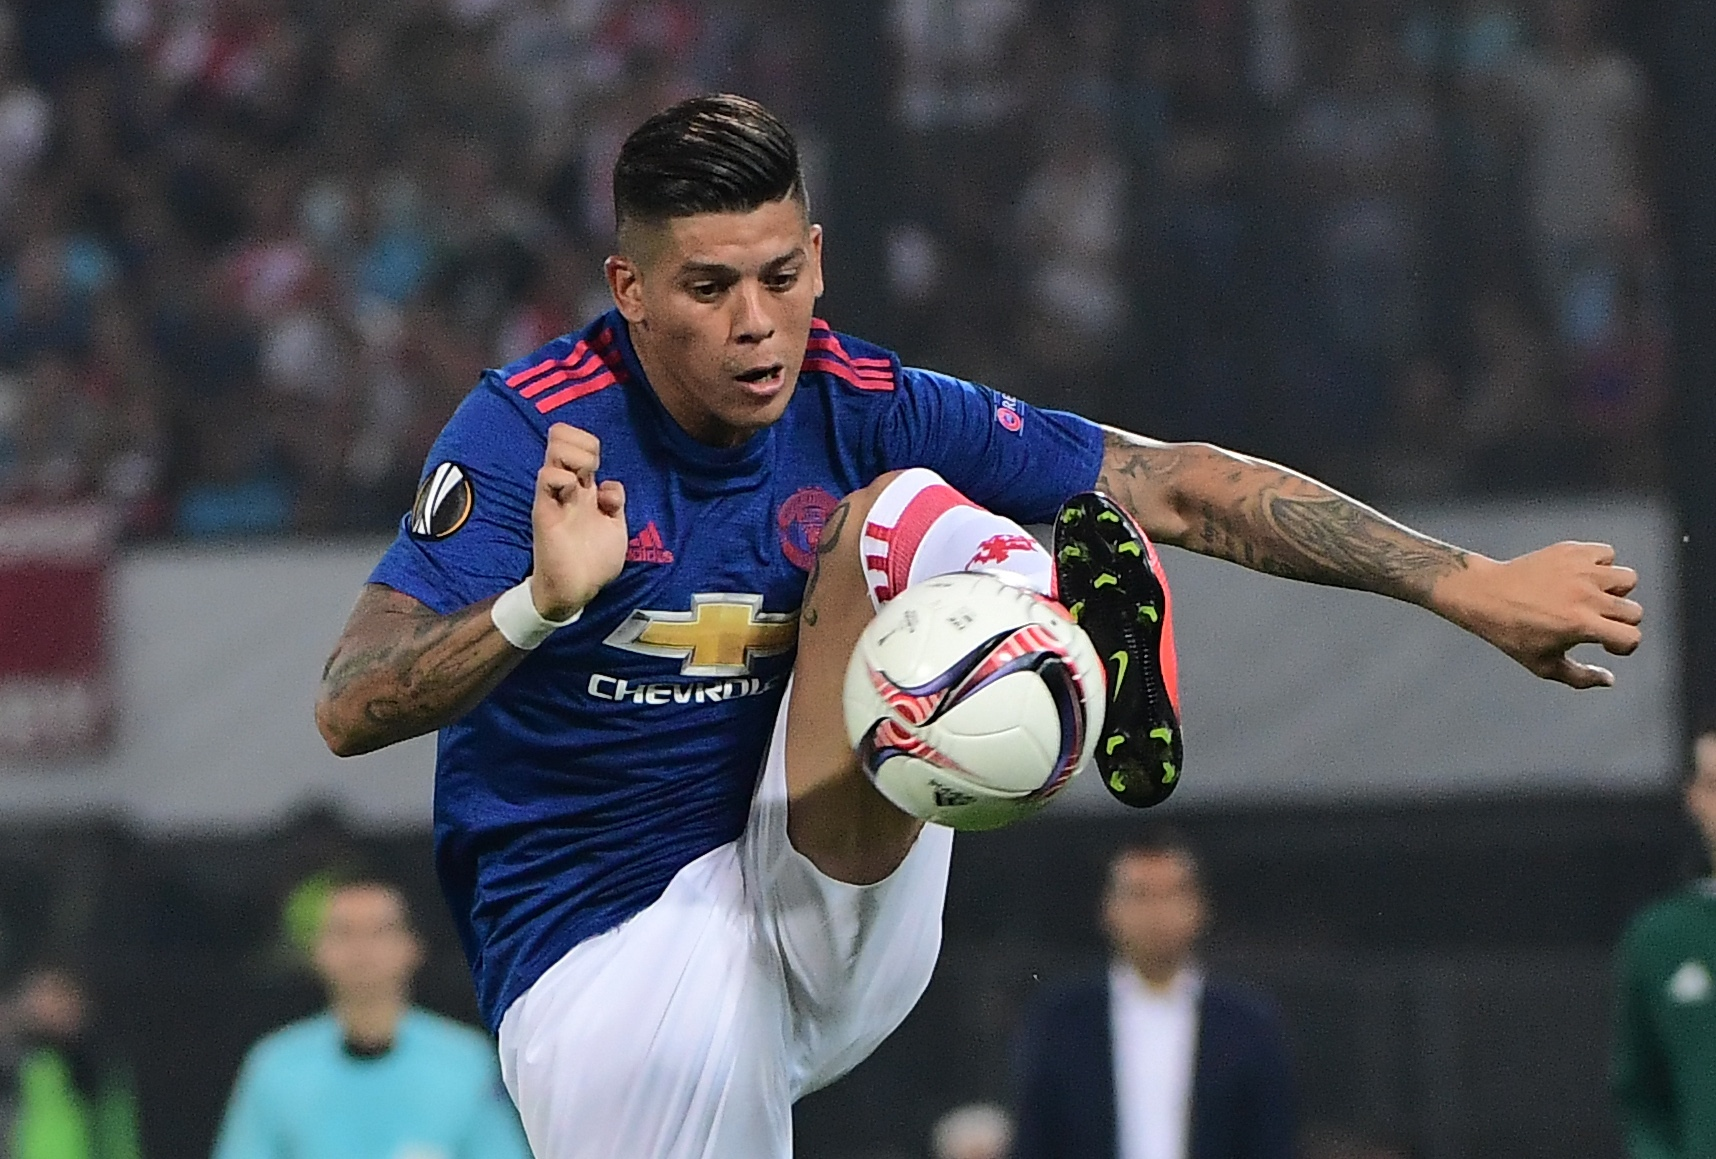 Feyenoord 1-0 Manchester United player ratings: Paul Pogba and Marcos Rojo flop